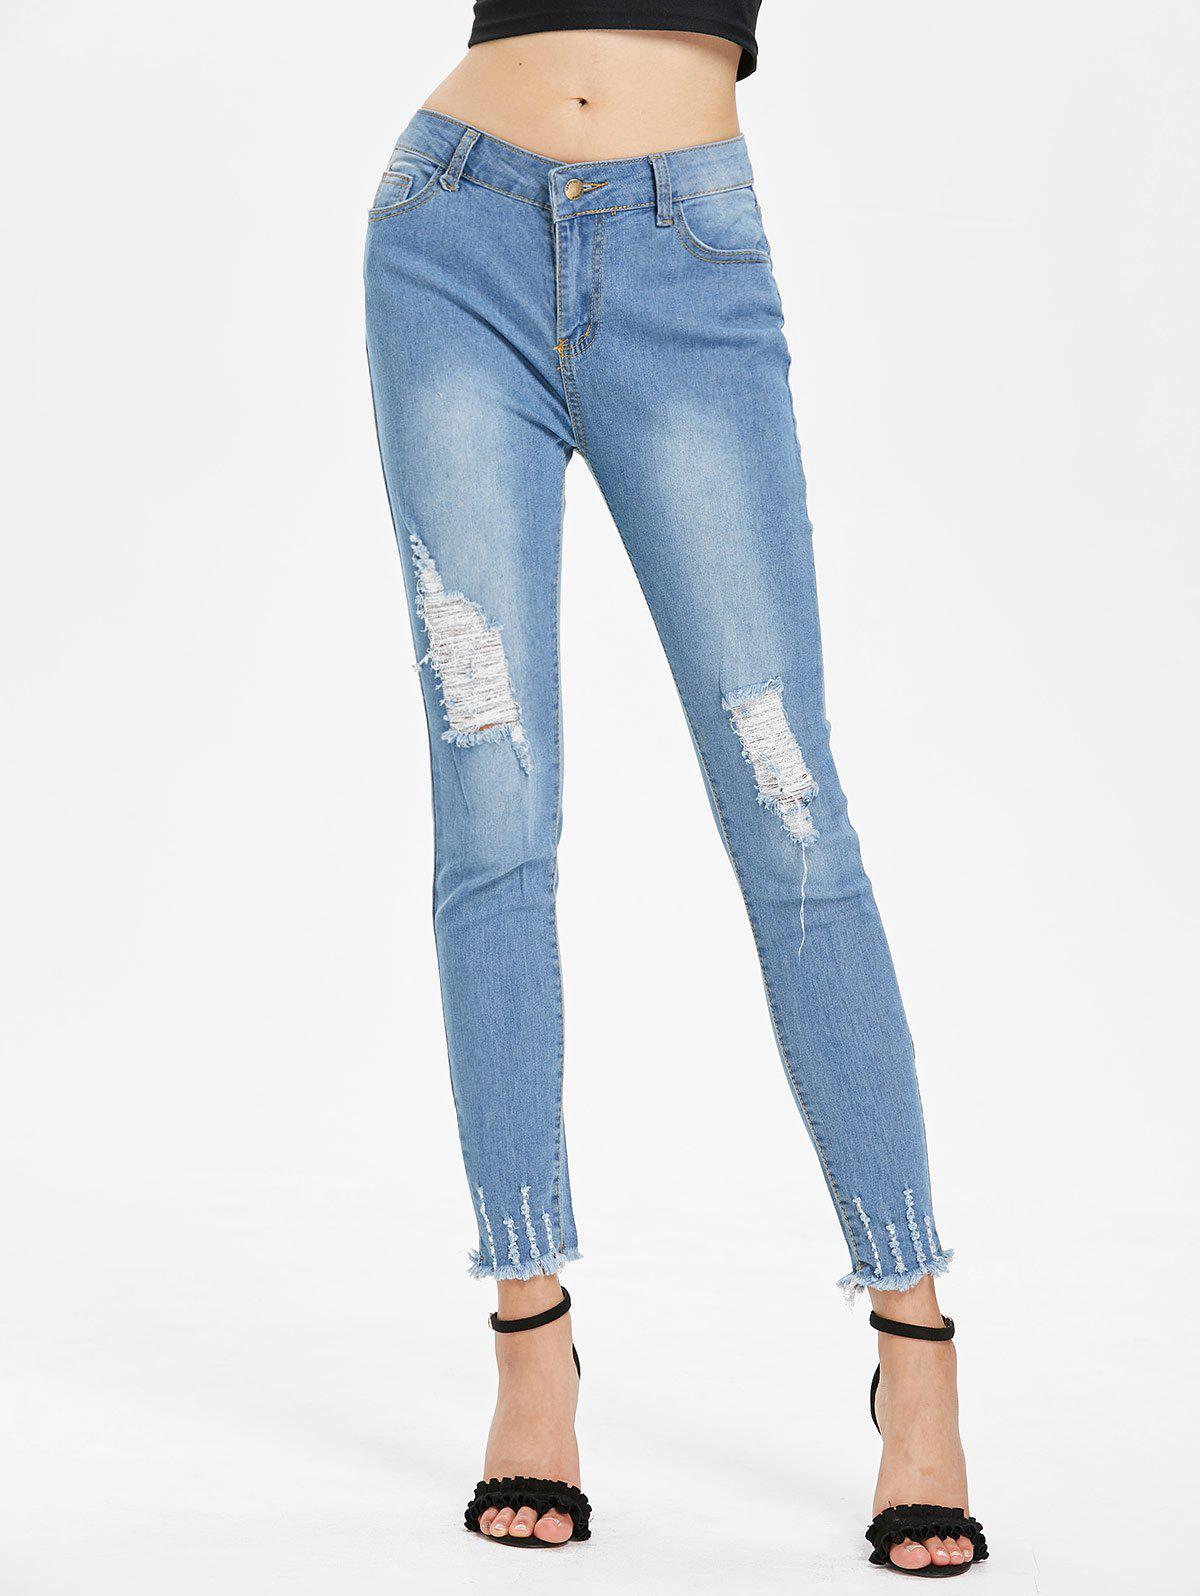 High Waisted Ripped Jeans - DENIM BLUE L